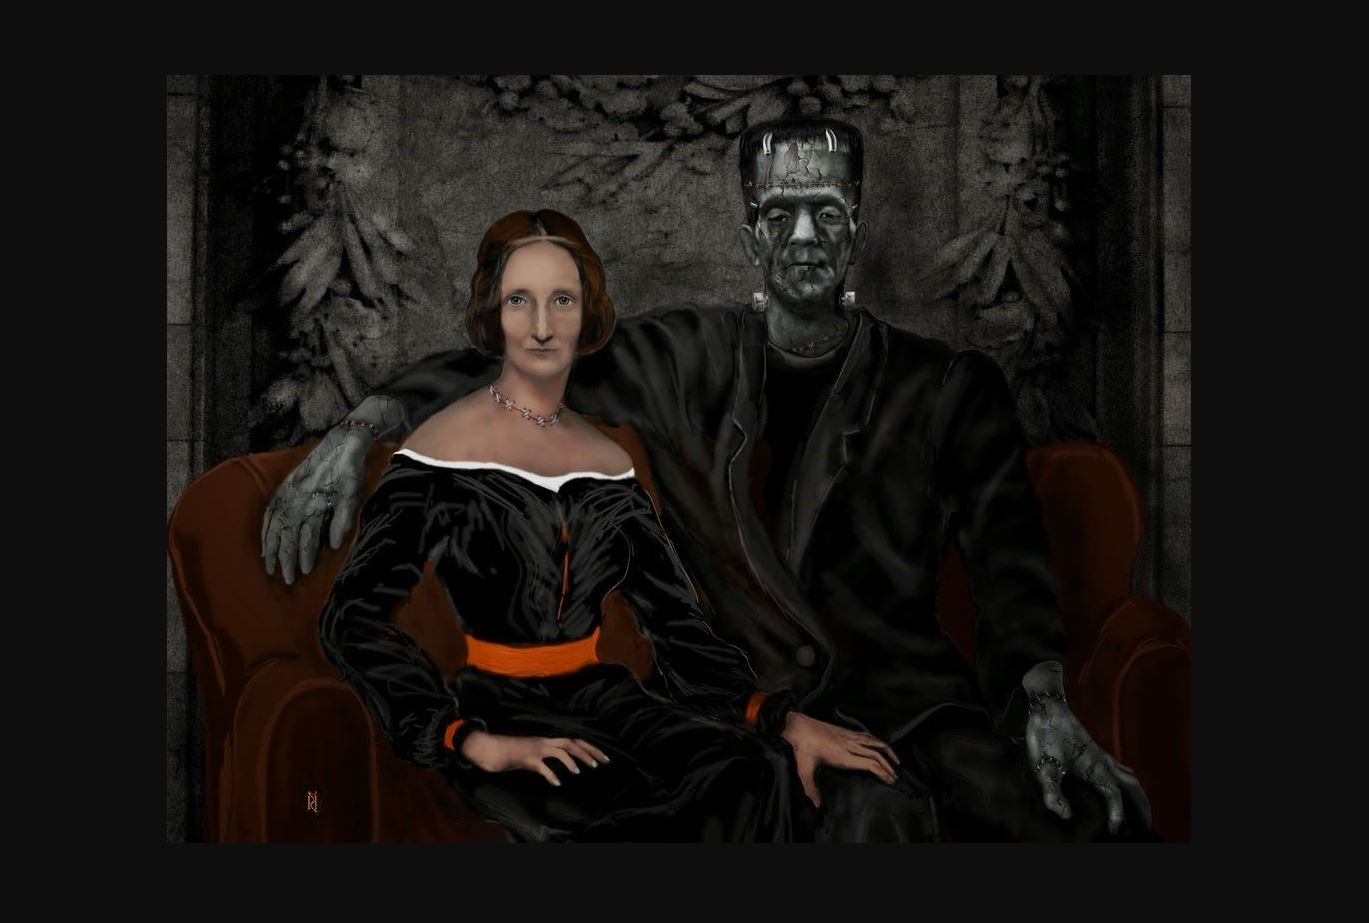 mary_shelley-770x578.jpg